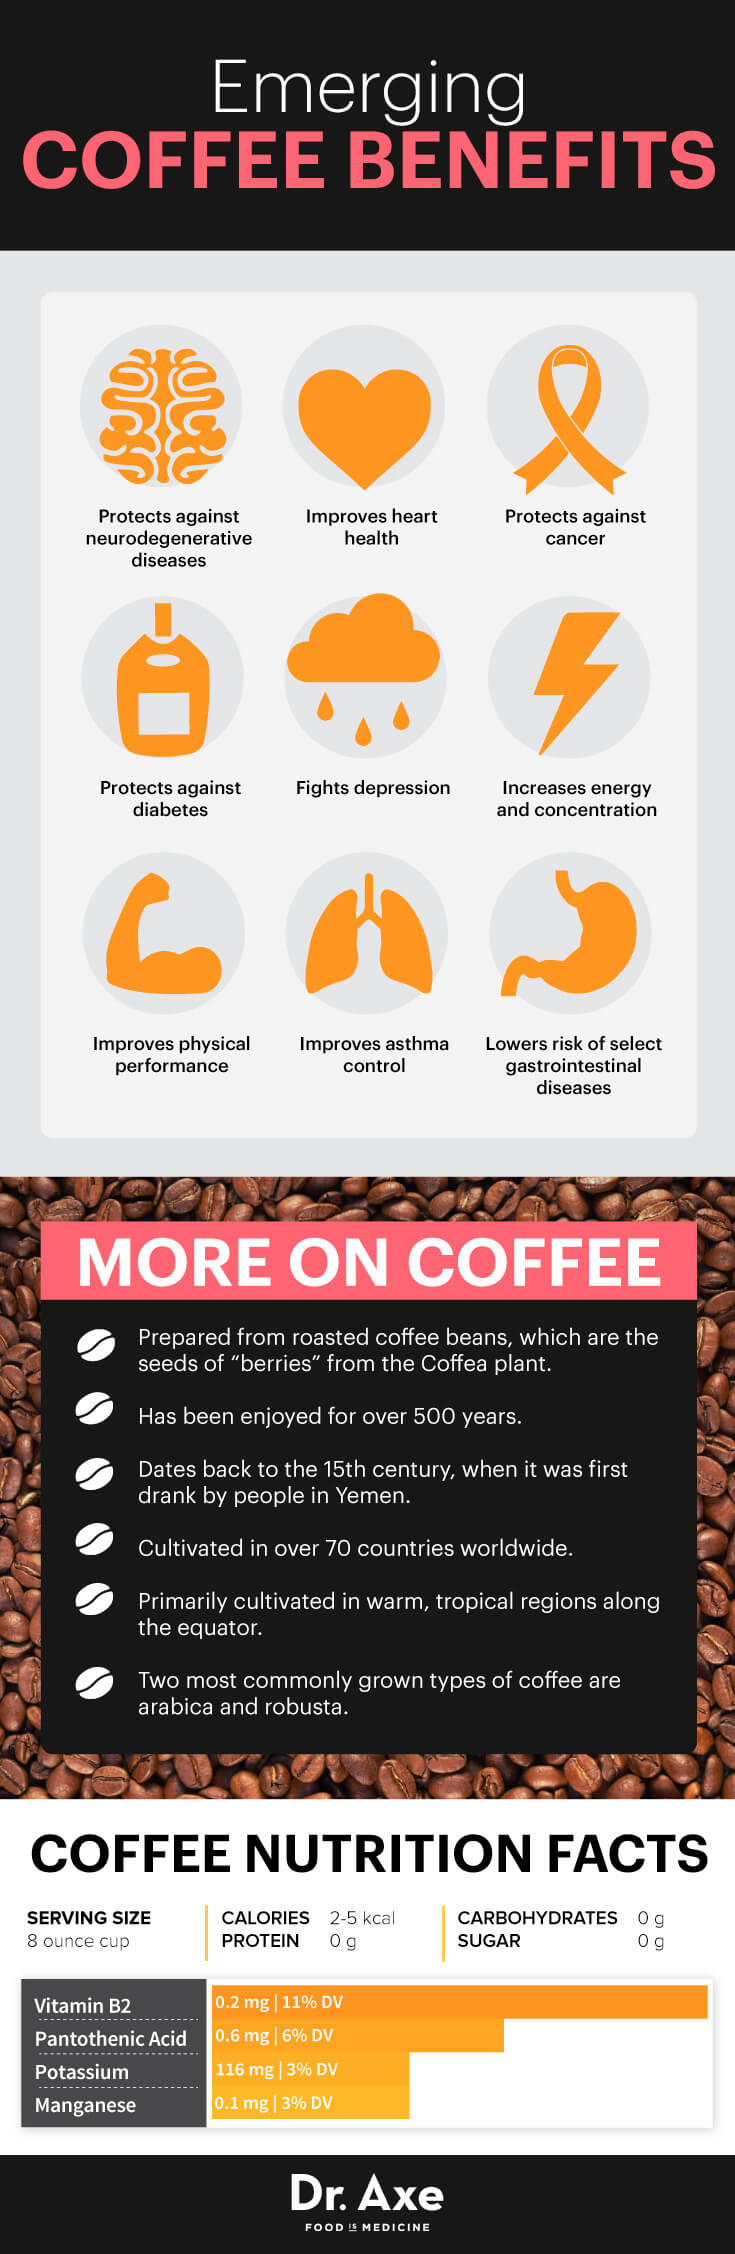 Image Result For How Much Caffeine In An Ounce Cup Of Coffee